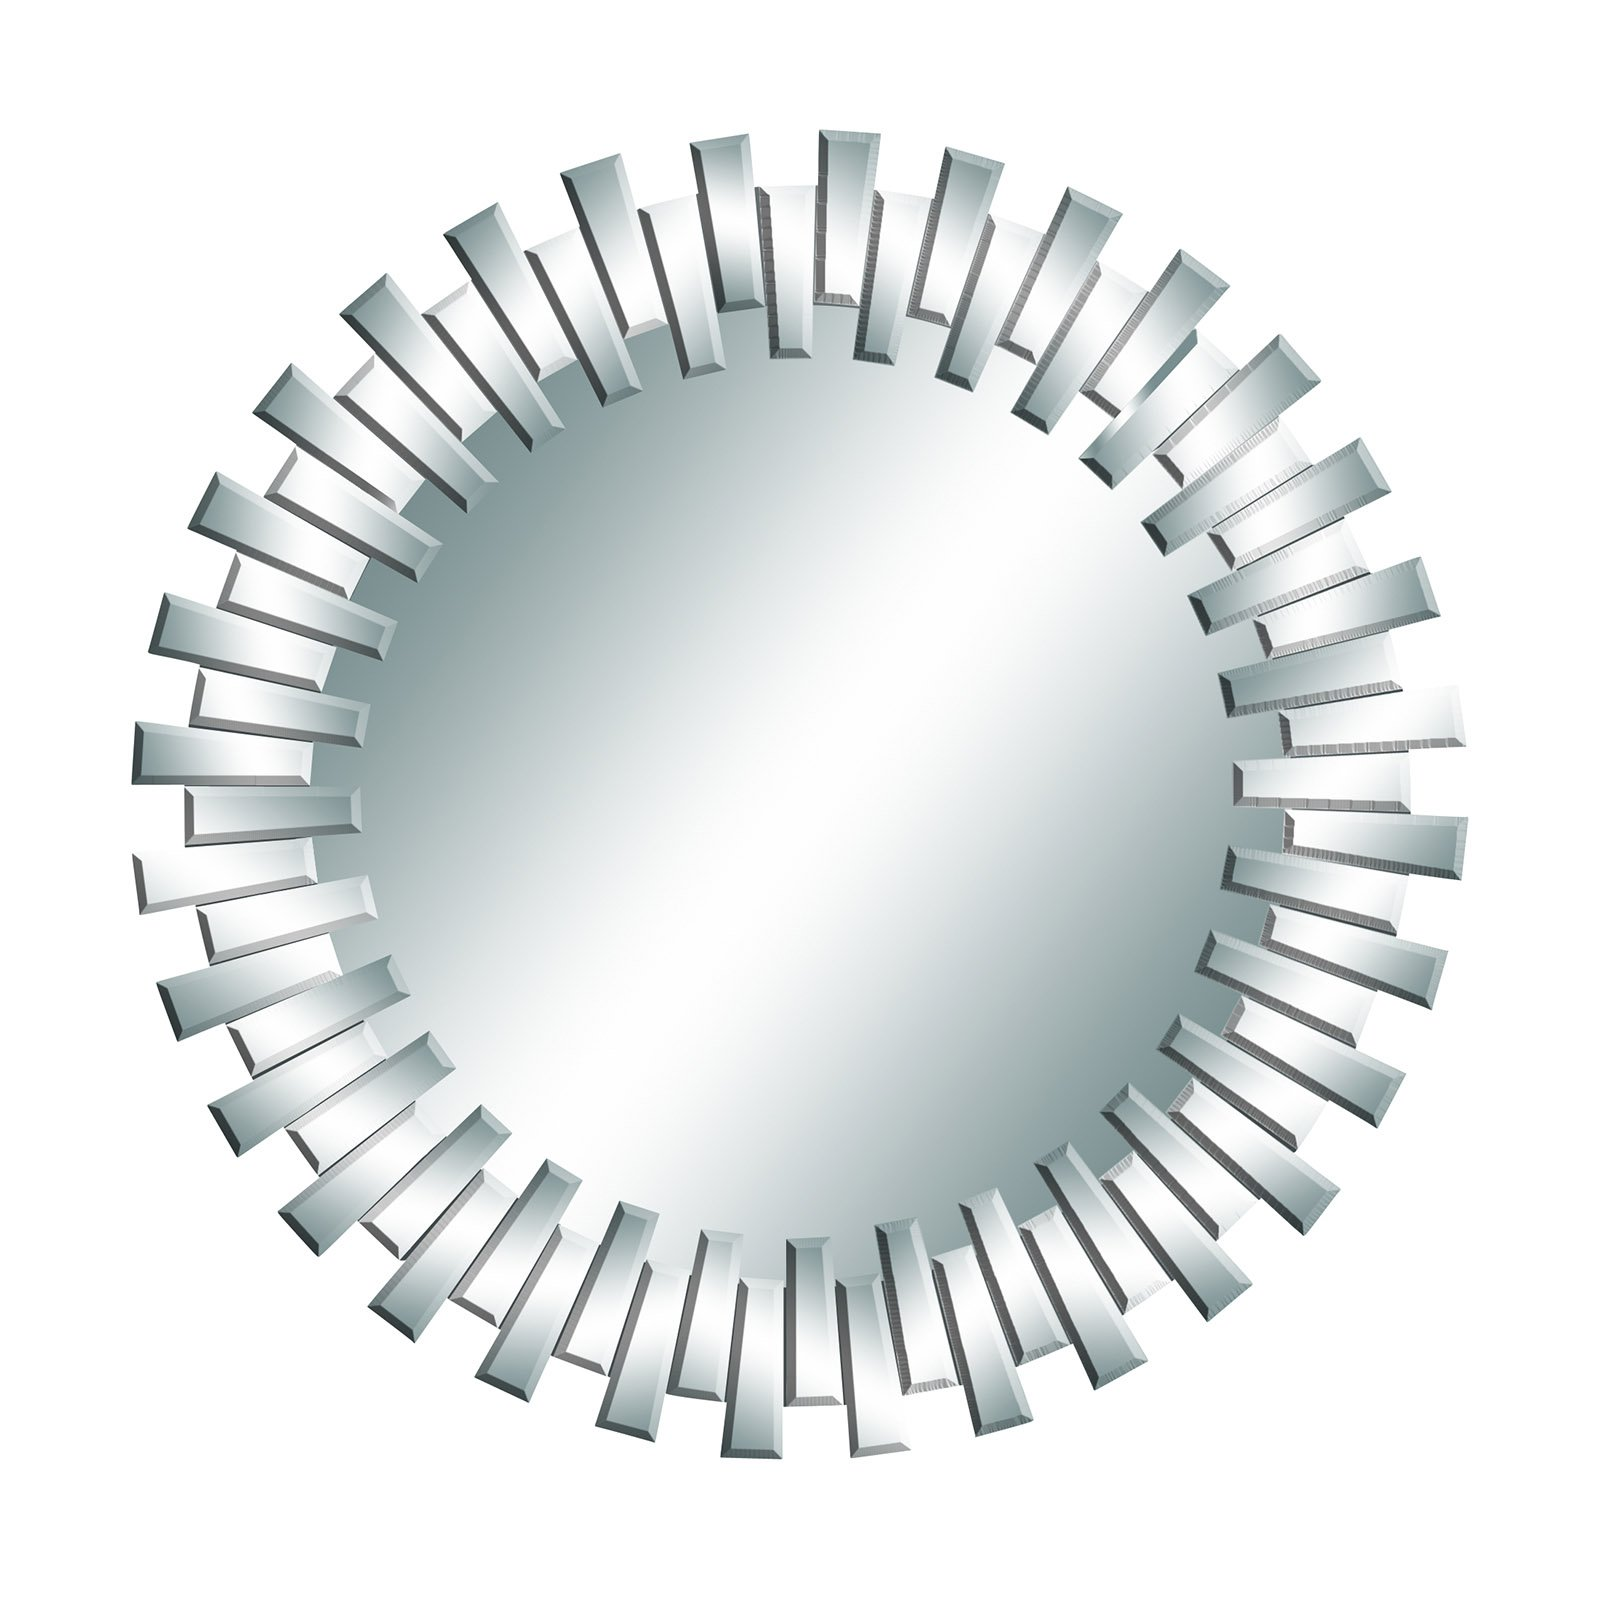 Style Round Mirror Silver Frame Staggered Shapes Wall Modern Decor 53894